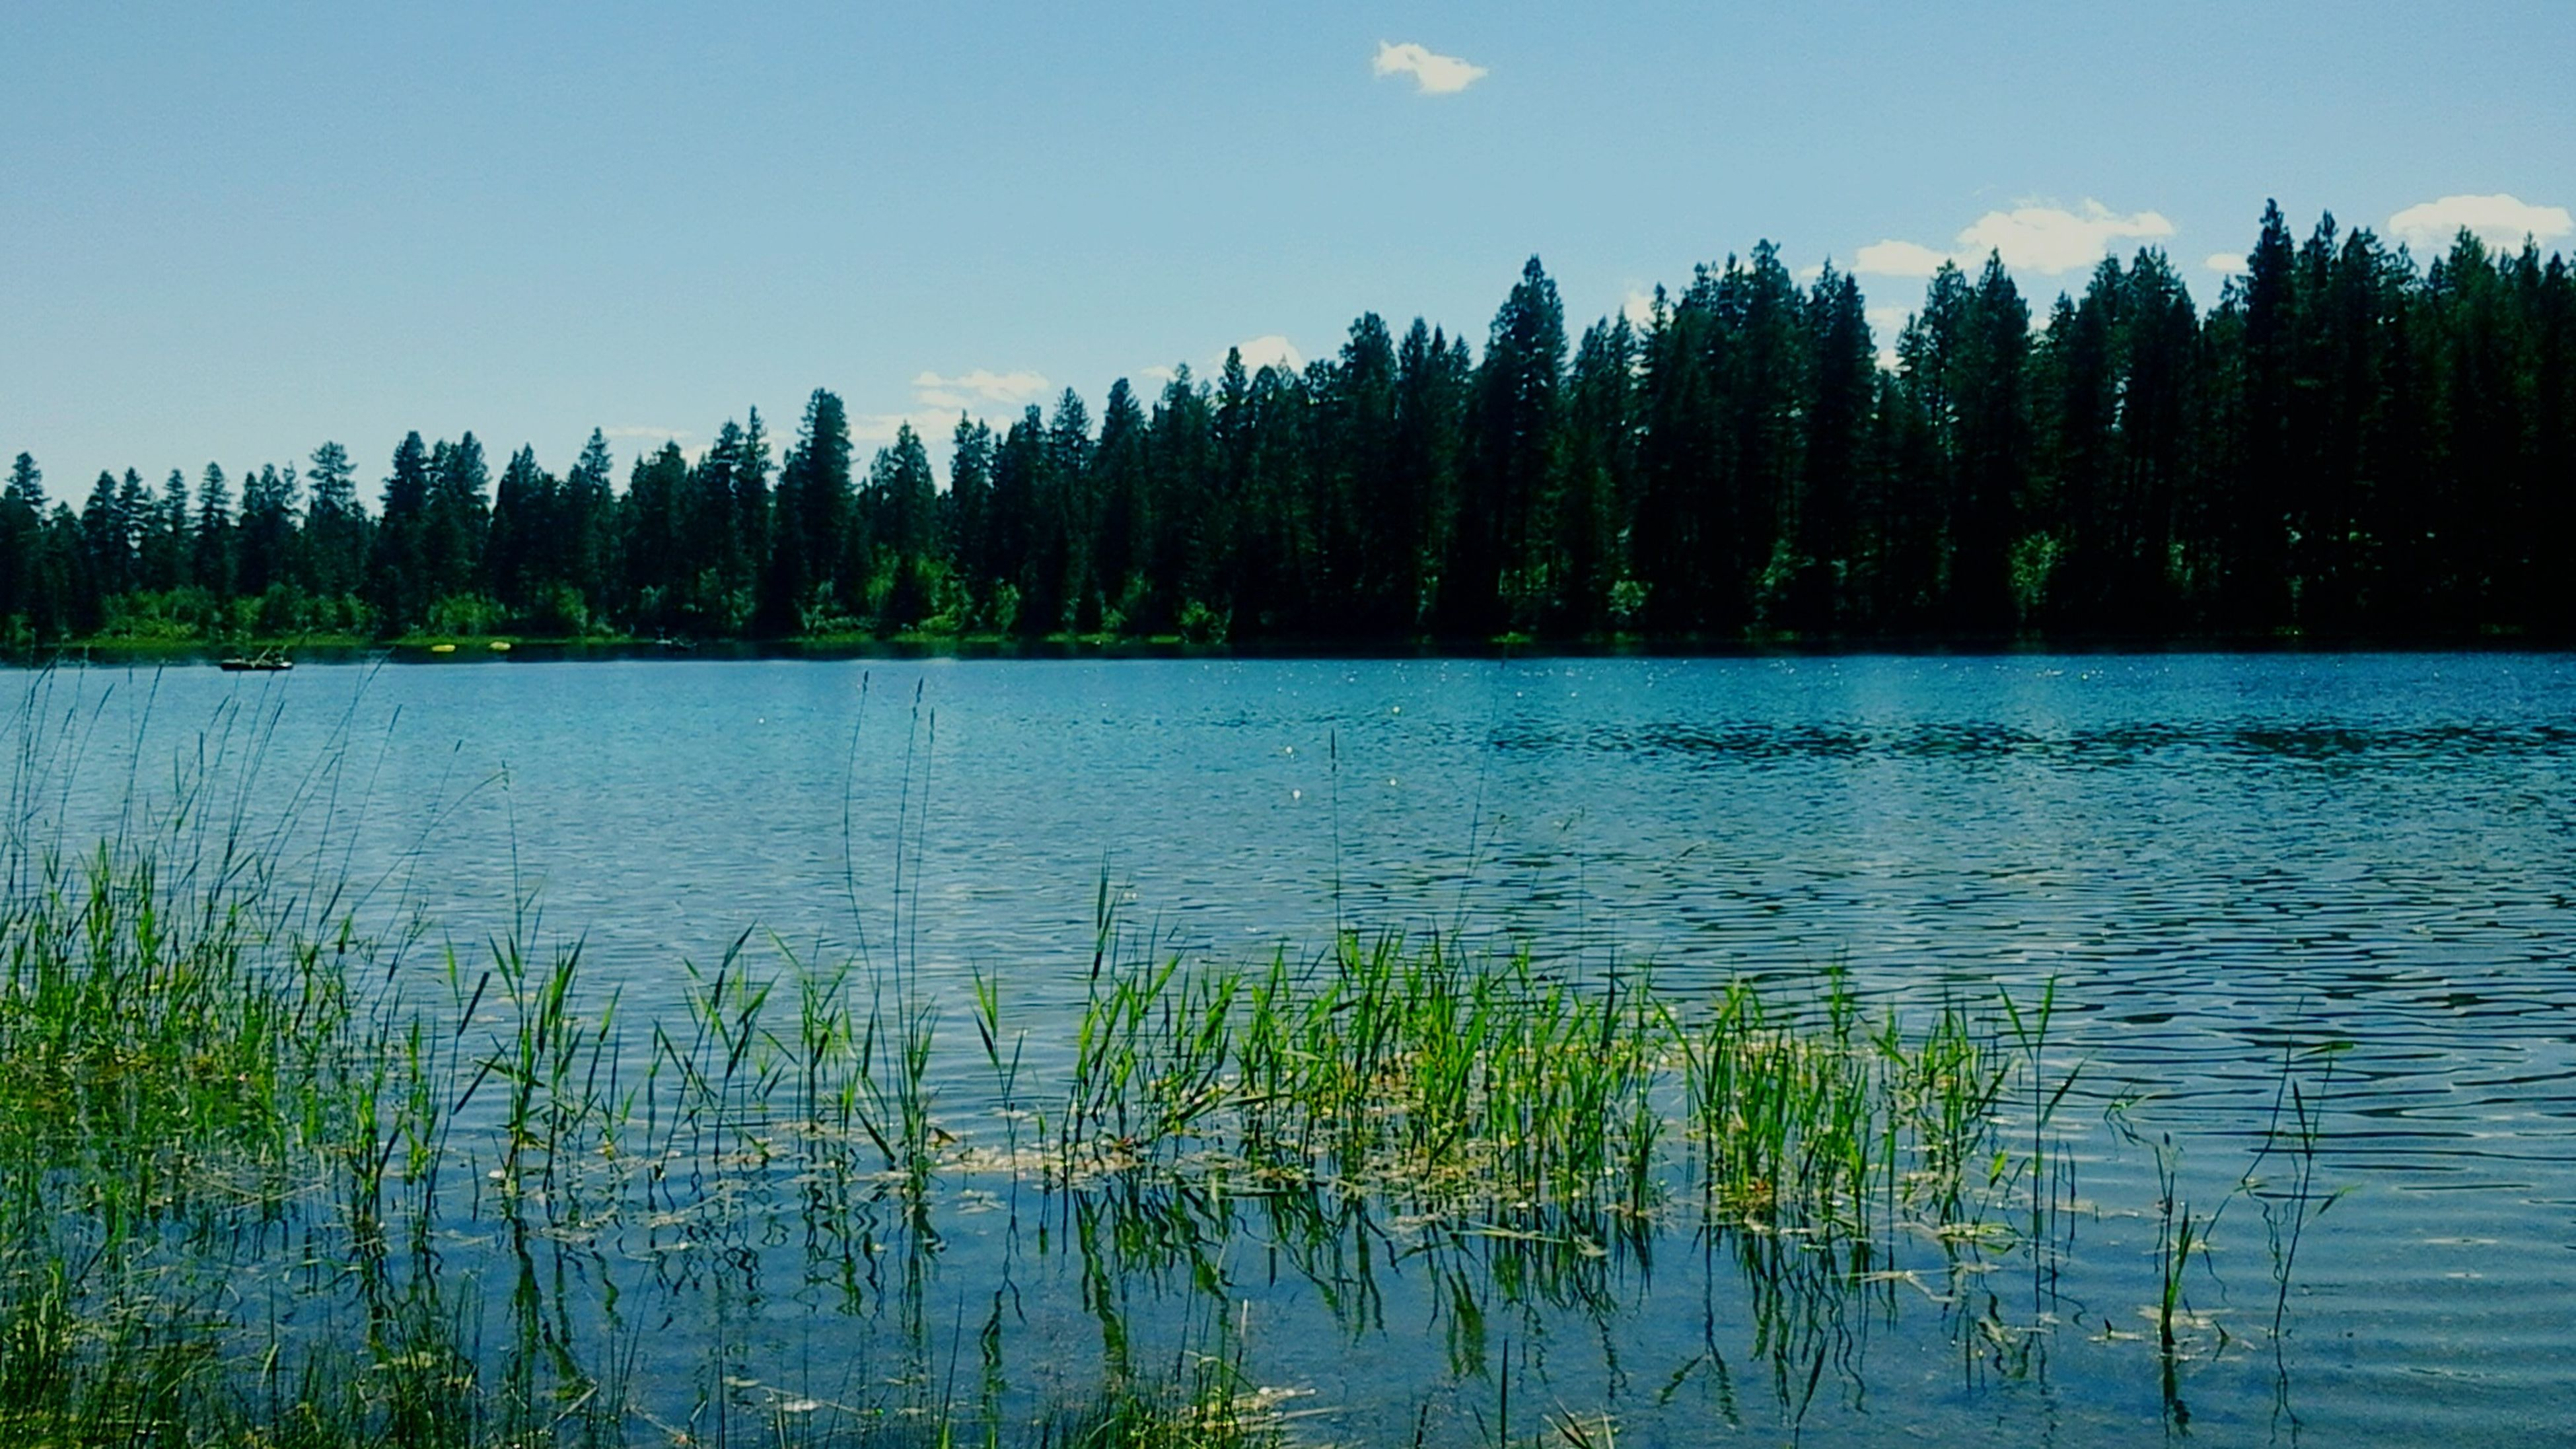 water, tranquil scene, tranquility, lake, blue, reflection, scenics, beauty in nature, nature, plant, sky, growth, idyllic, grass, calm, day, outdoors, no people, rippled, non-urban scene, non urban scene, lakeshore, standing water, remote, majestic, landscape, growing, green color, green